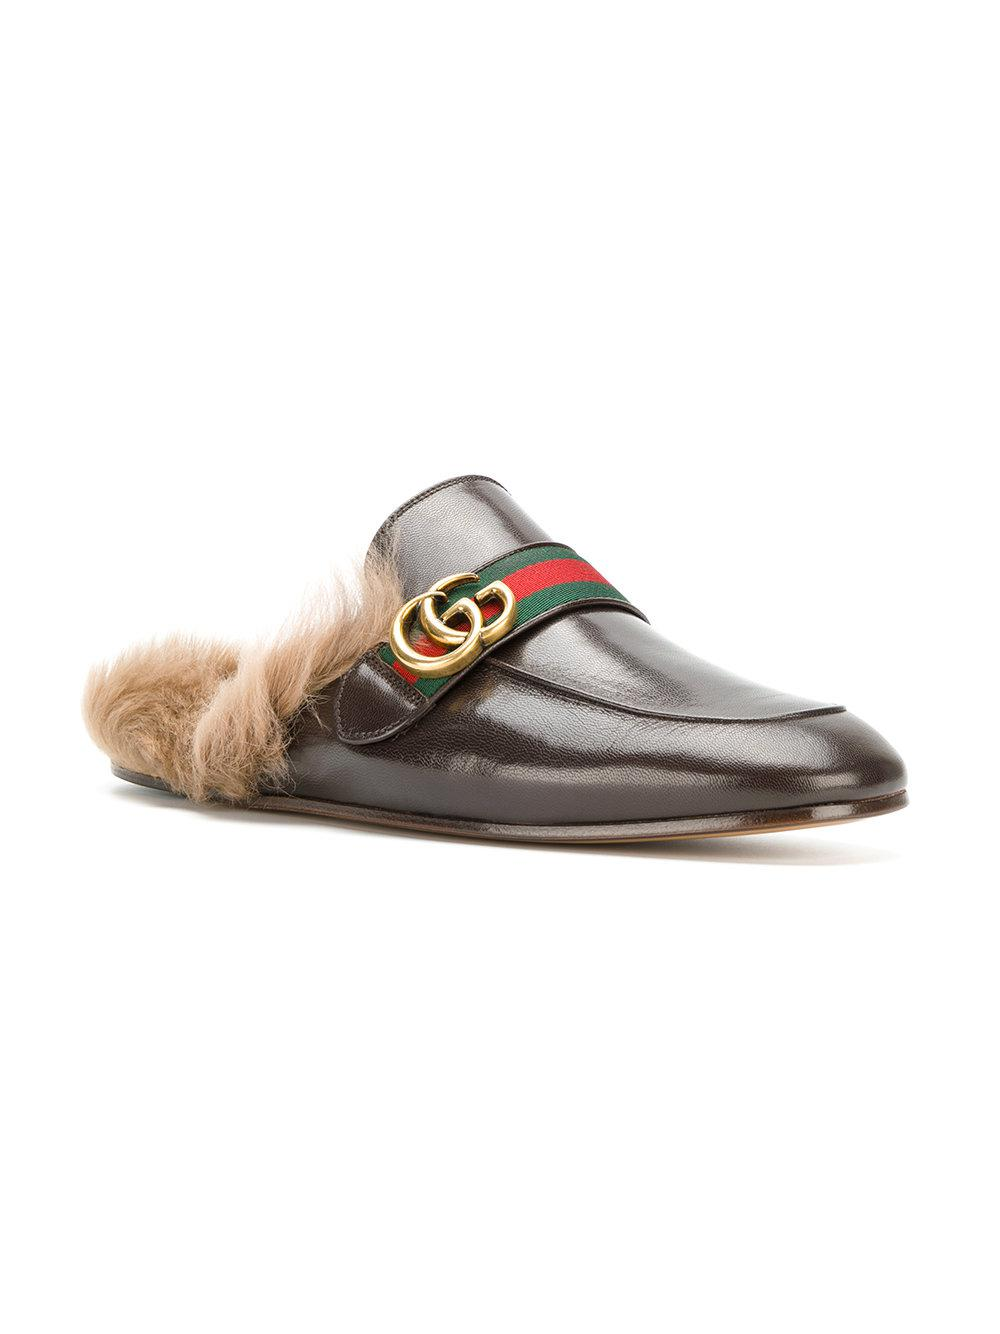 c46cedf6367e7 Lyst - Gucci Princetown Appliqué Slippers in Brown for Men